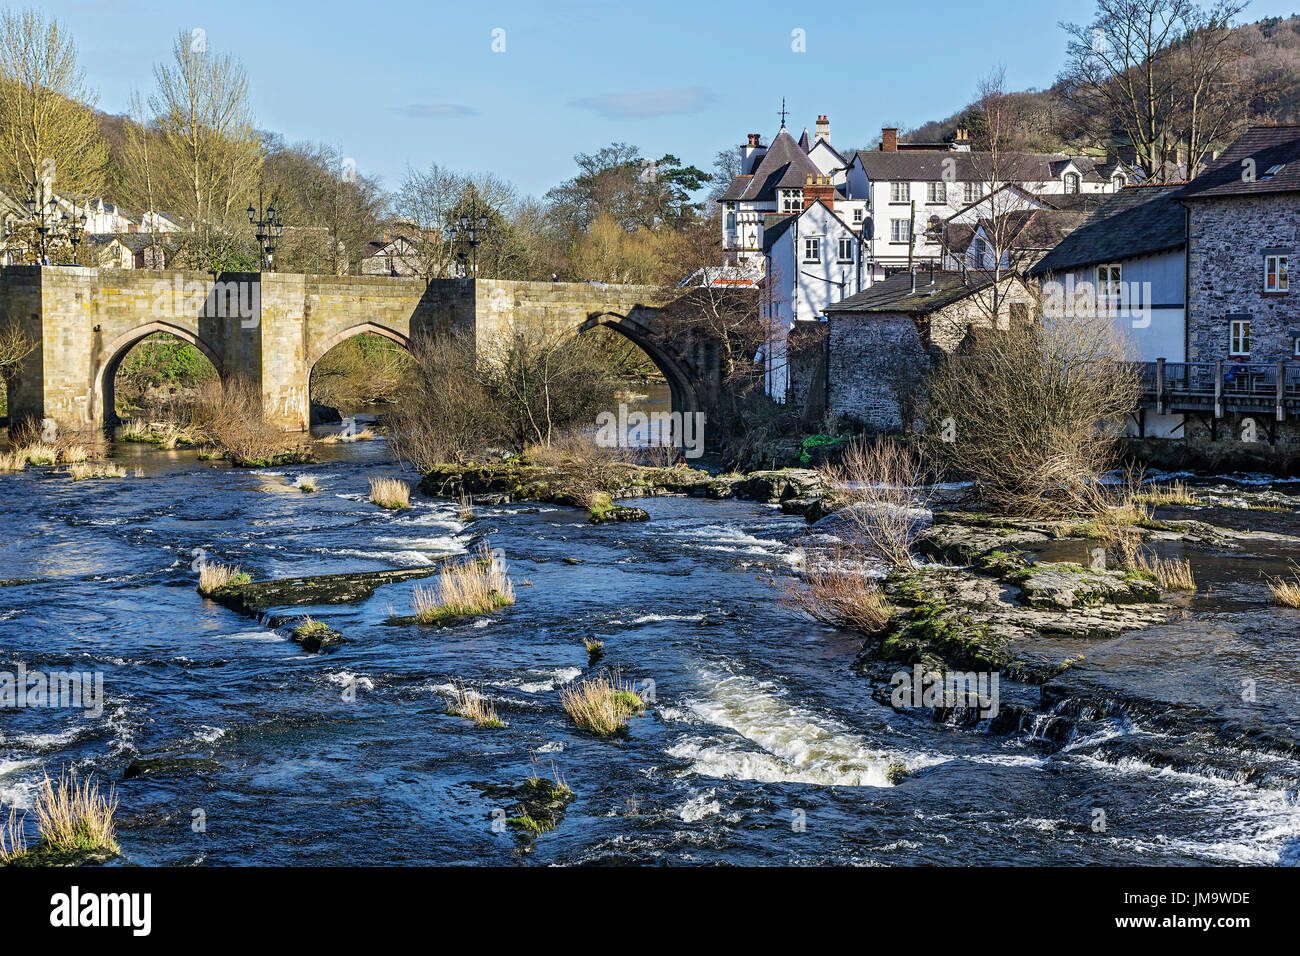 River Dee flowing through the centre of Llangollen showing the Dee Bridge a scheduled ancient monument Denbighshire Wales UK March 3095 - Stock Image